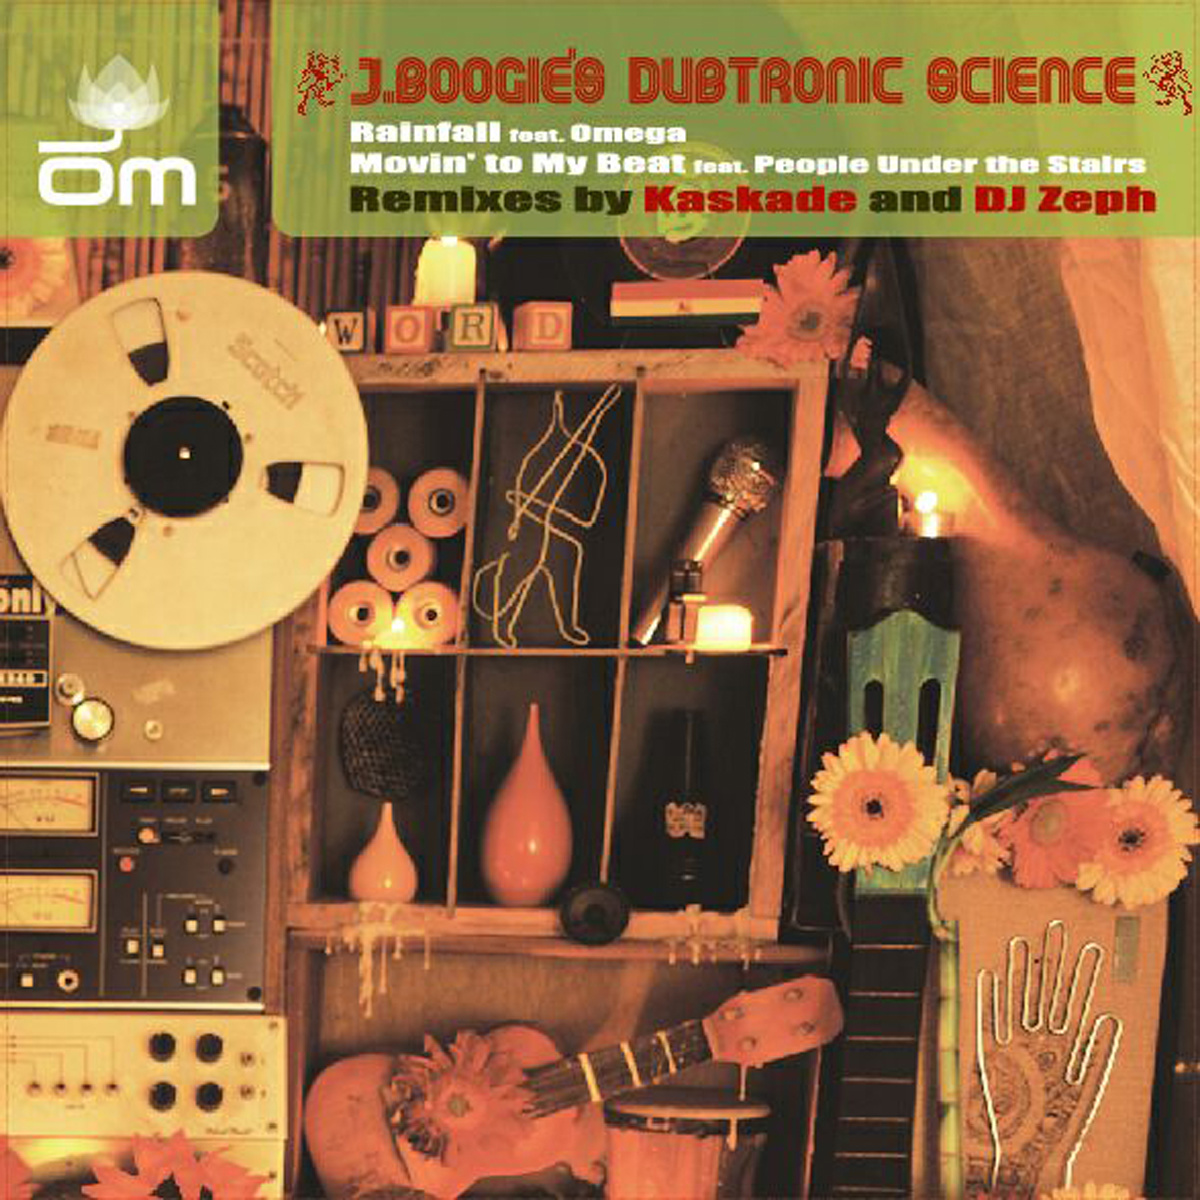 J Boogie's Dubtronic Science - Rainfall & Movin To My Beat